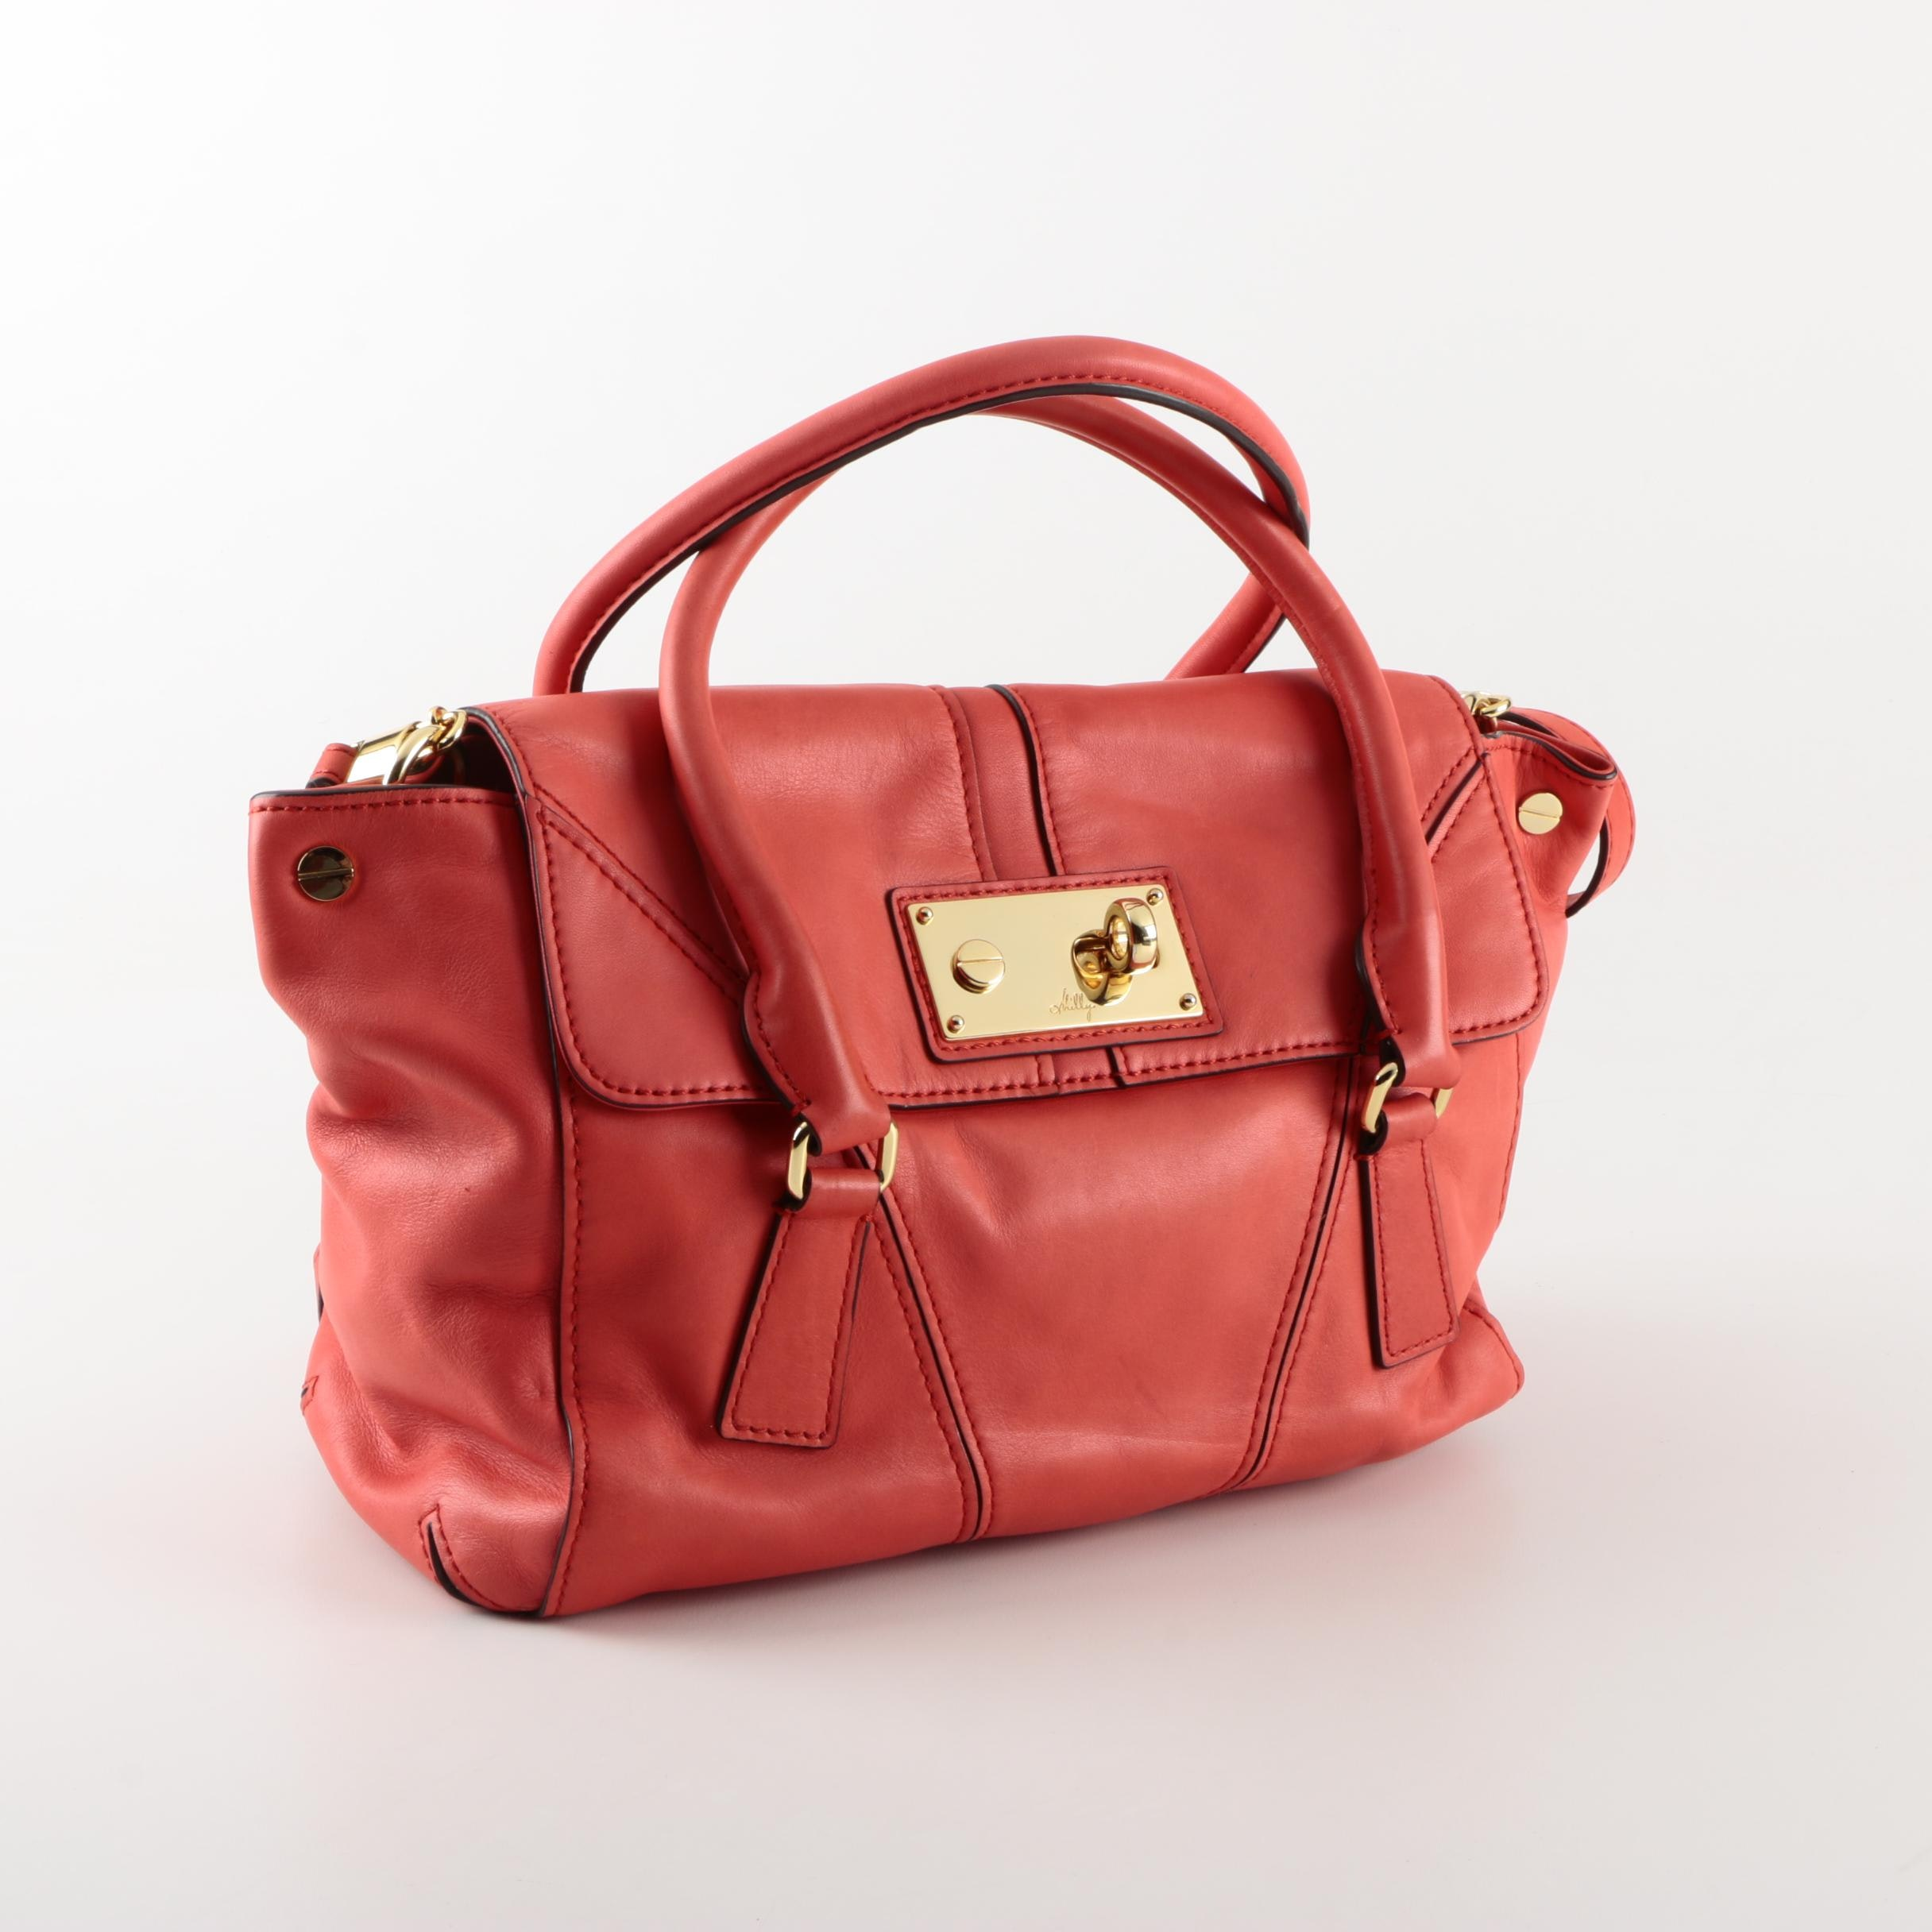 Milly Coral Leather Handbag